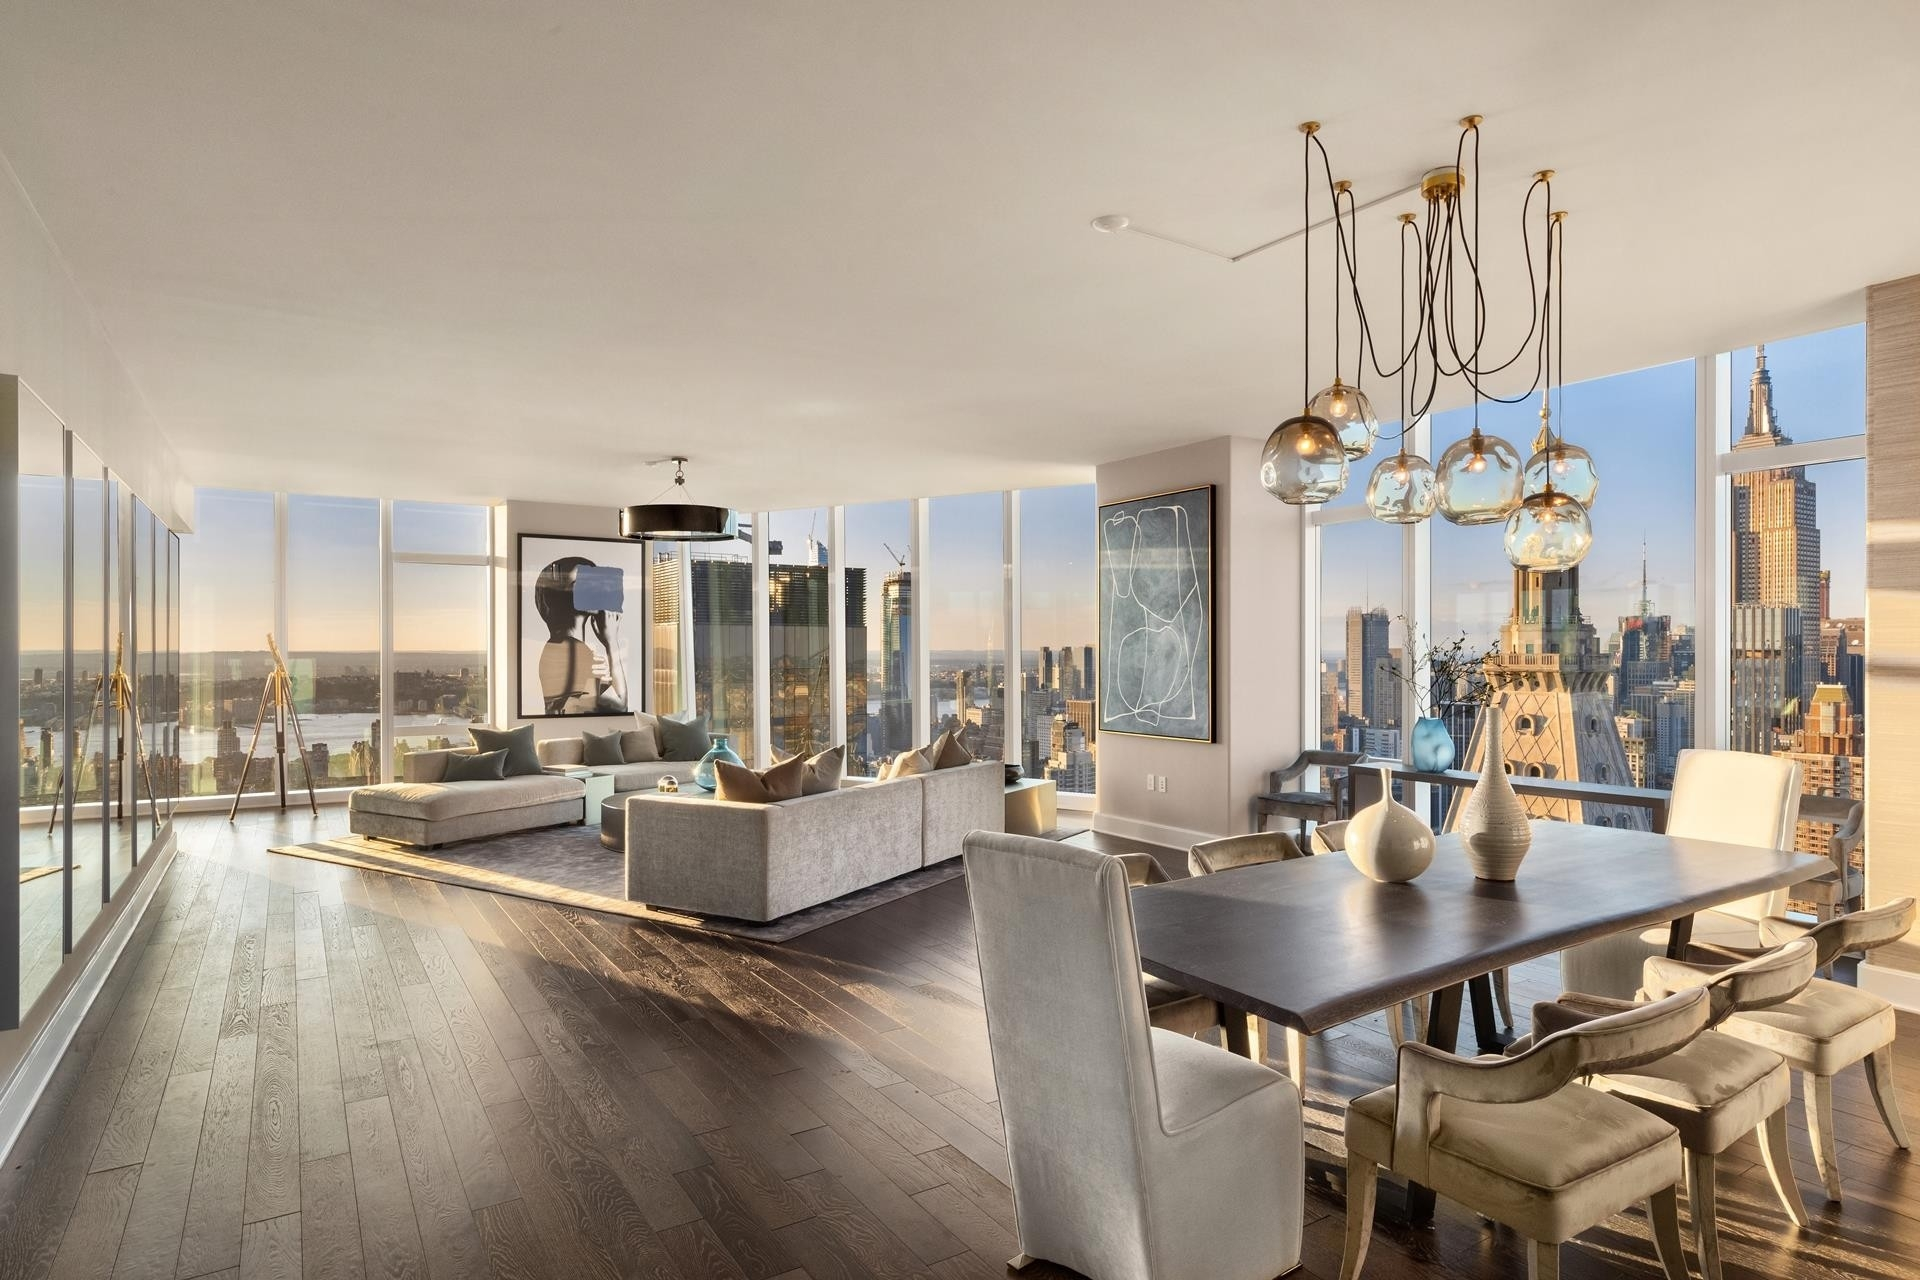 Condominium at Madison Square Park Tower, 45 East 22nd St, 57A New York